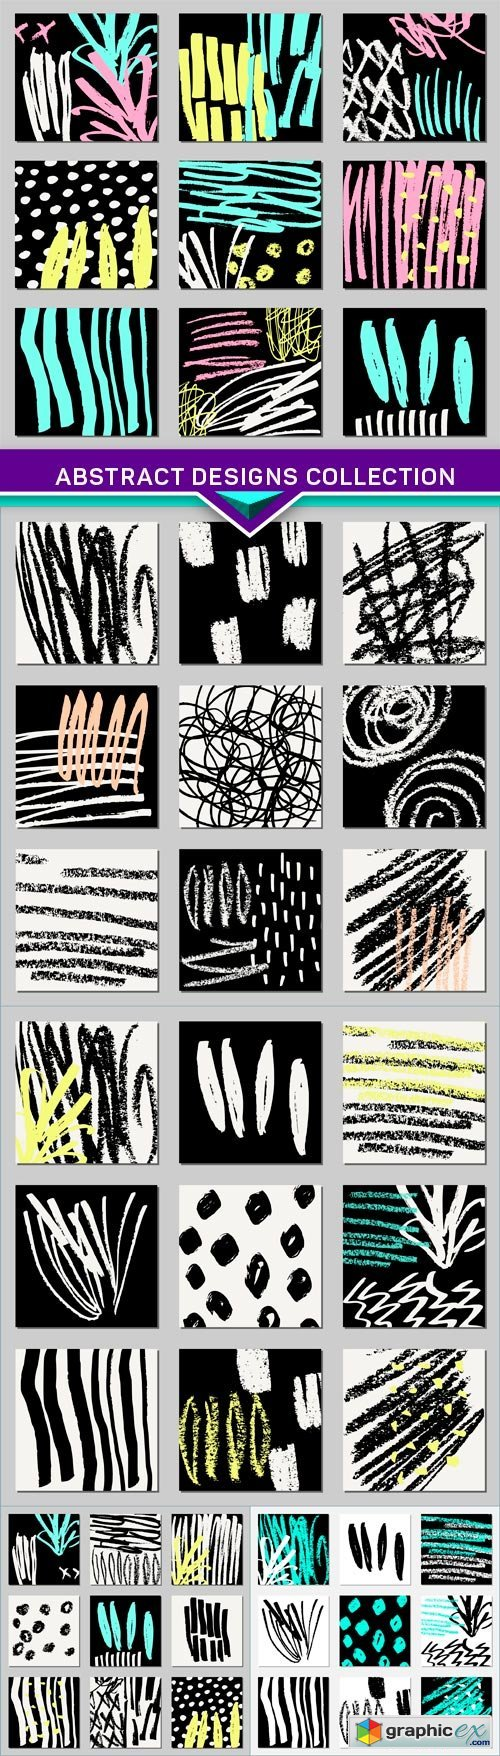 Abstract Designs Collection 5X EPS